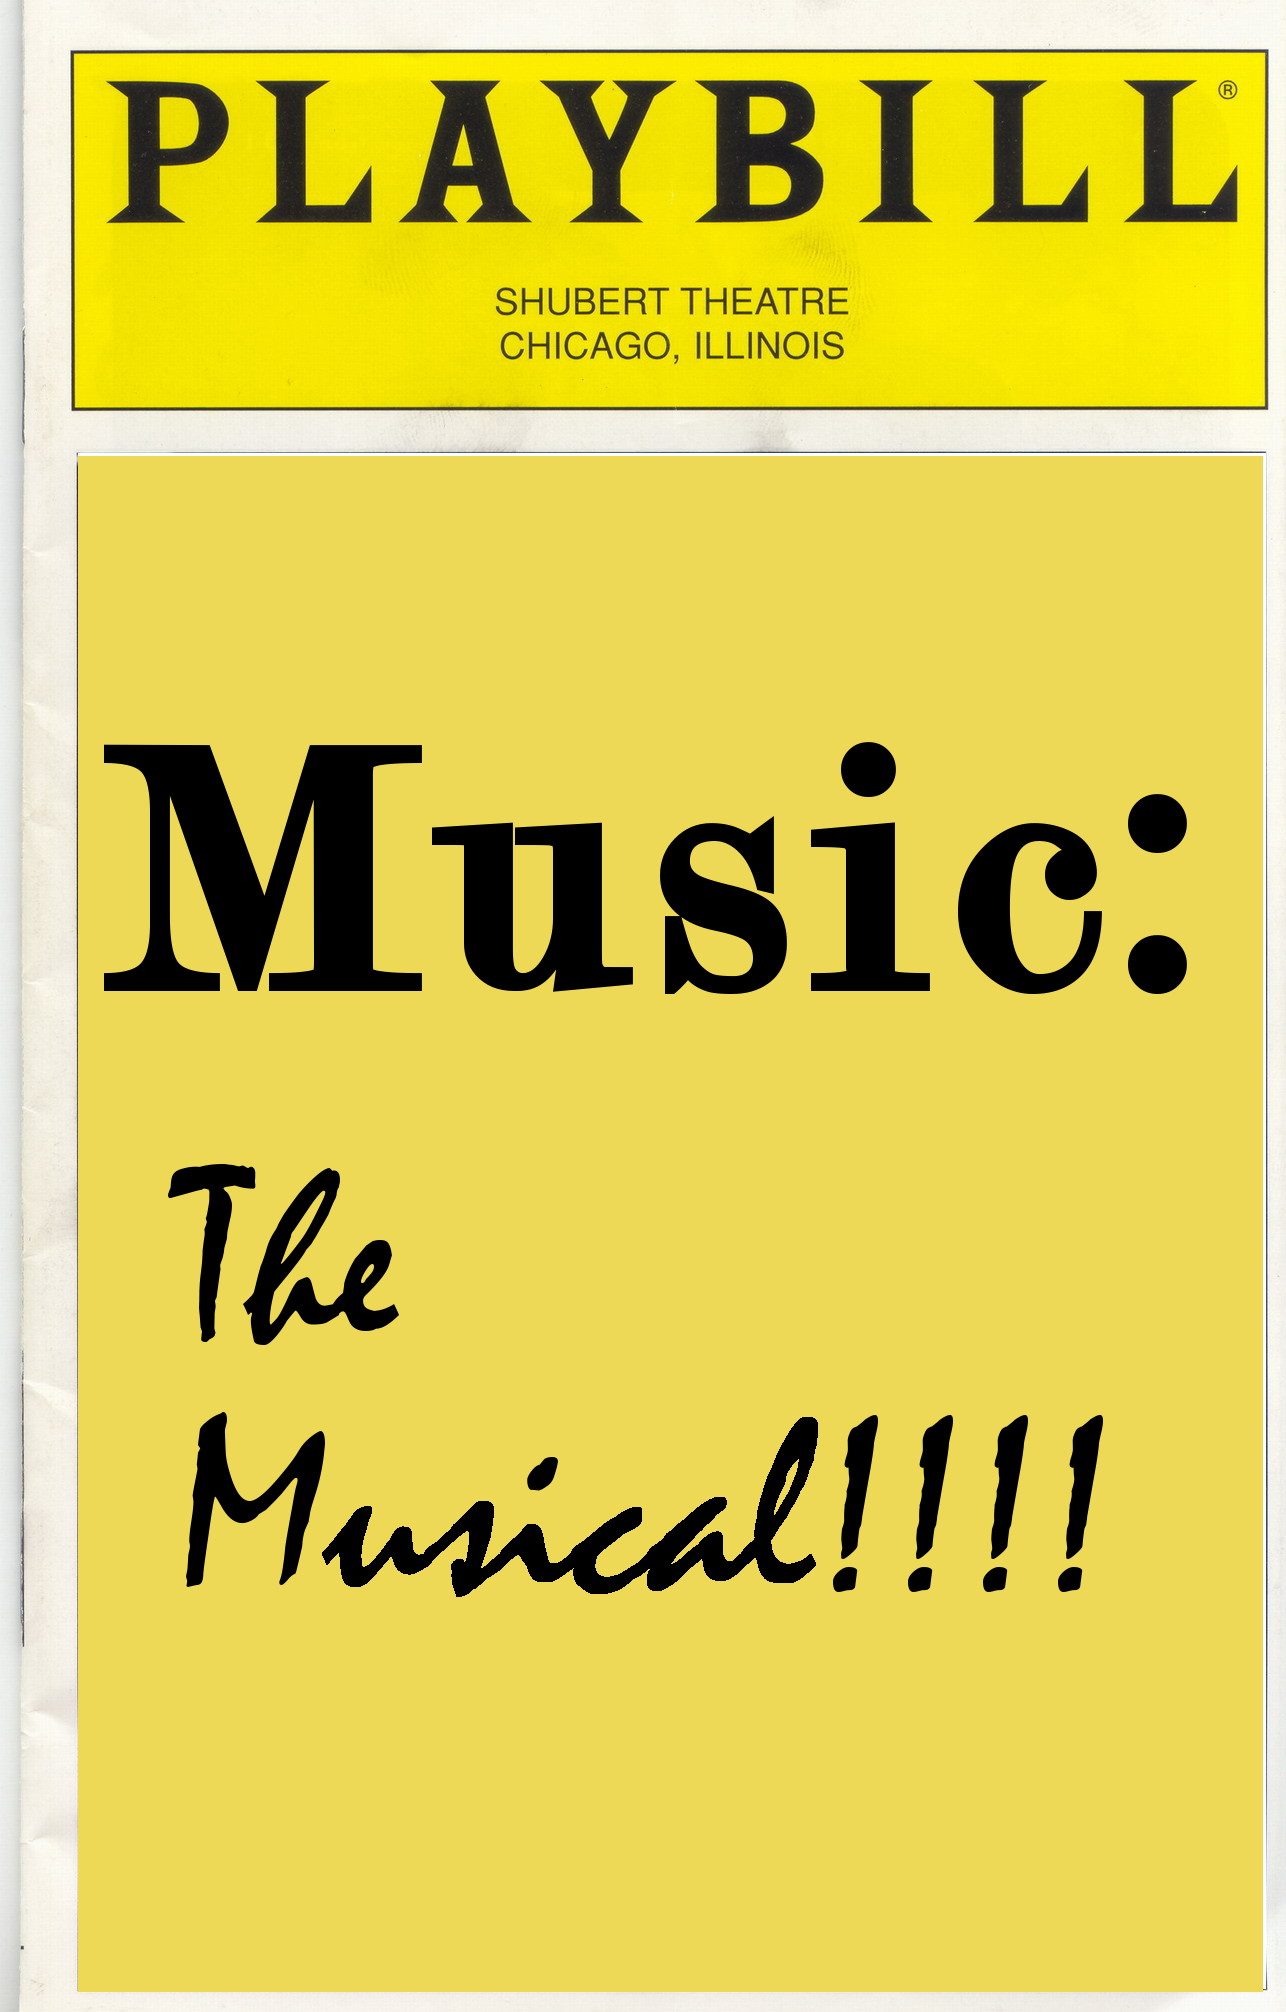 Playbill_MusicTheMusical